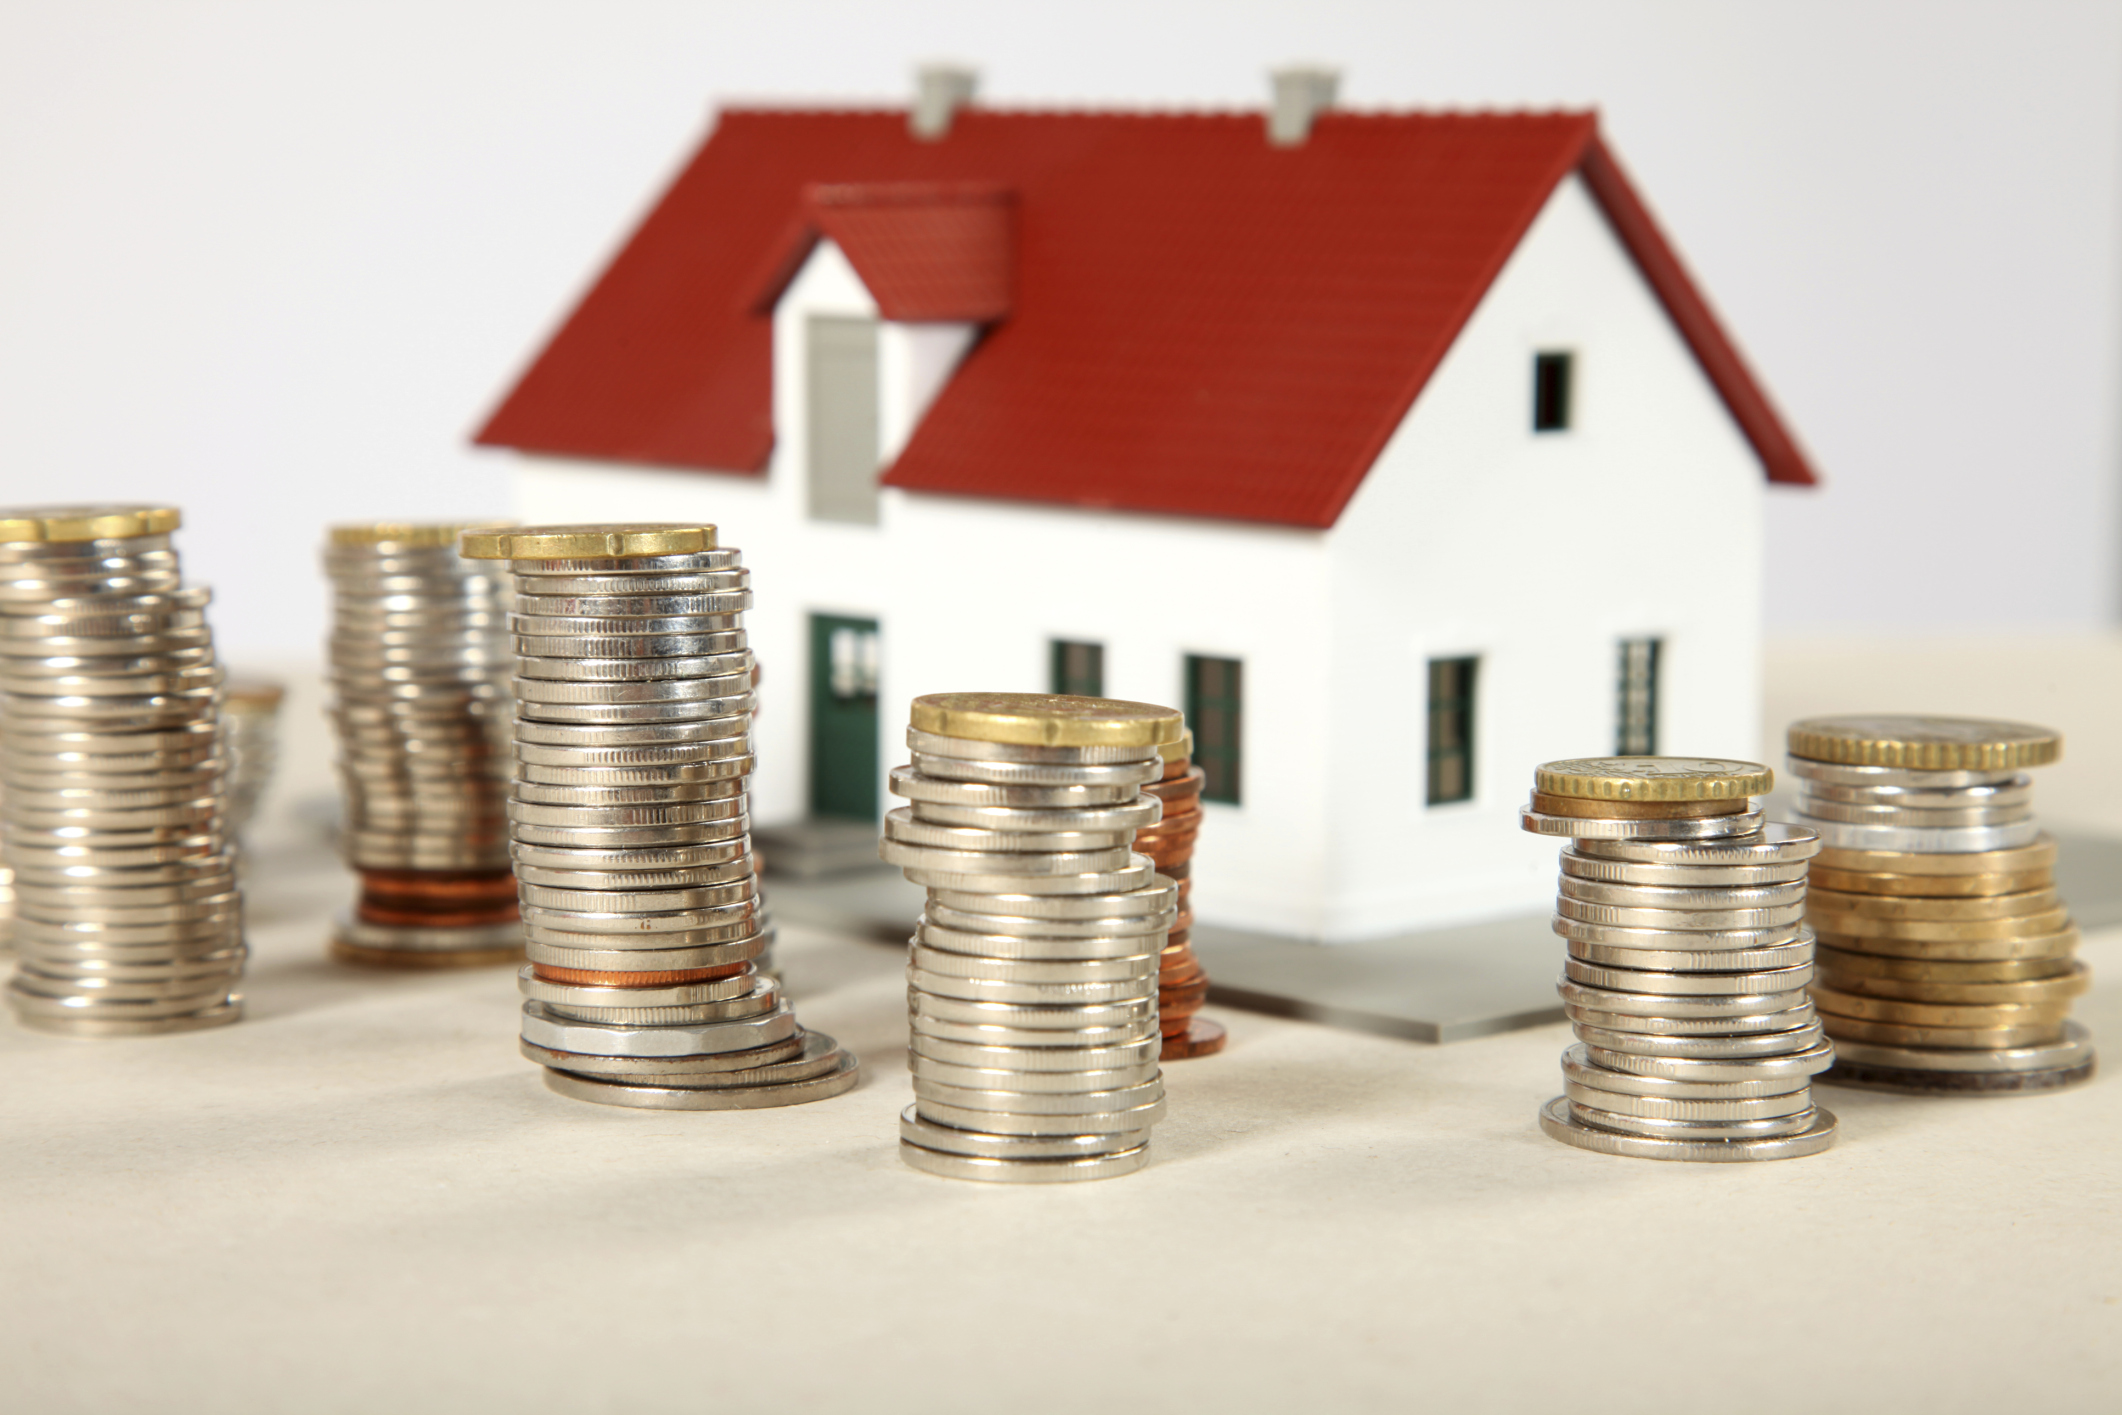 House prices, up or down?